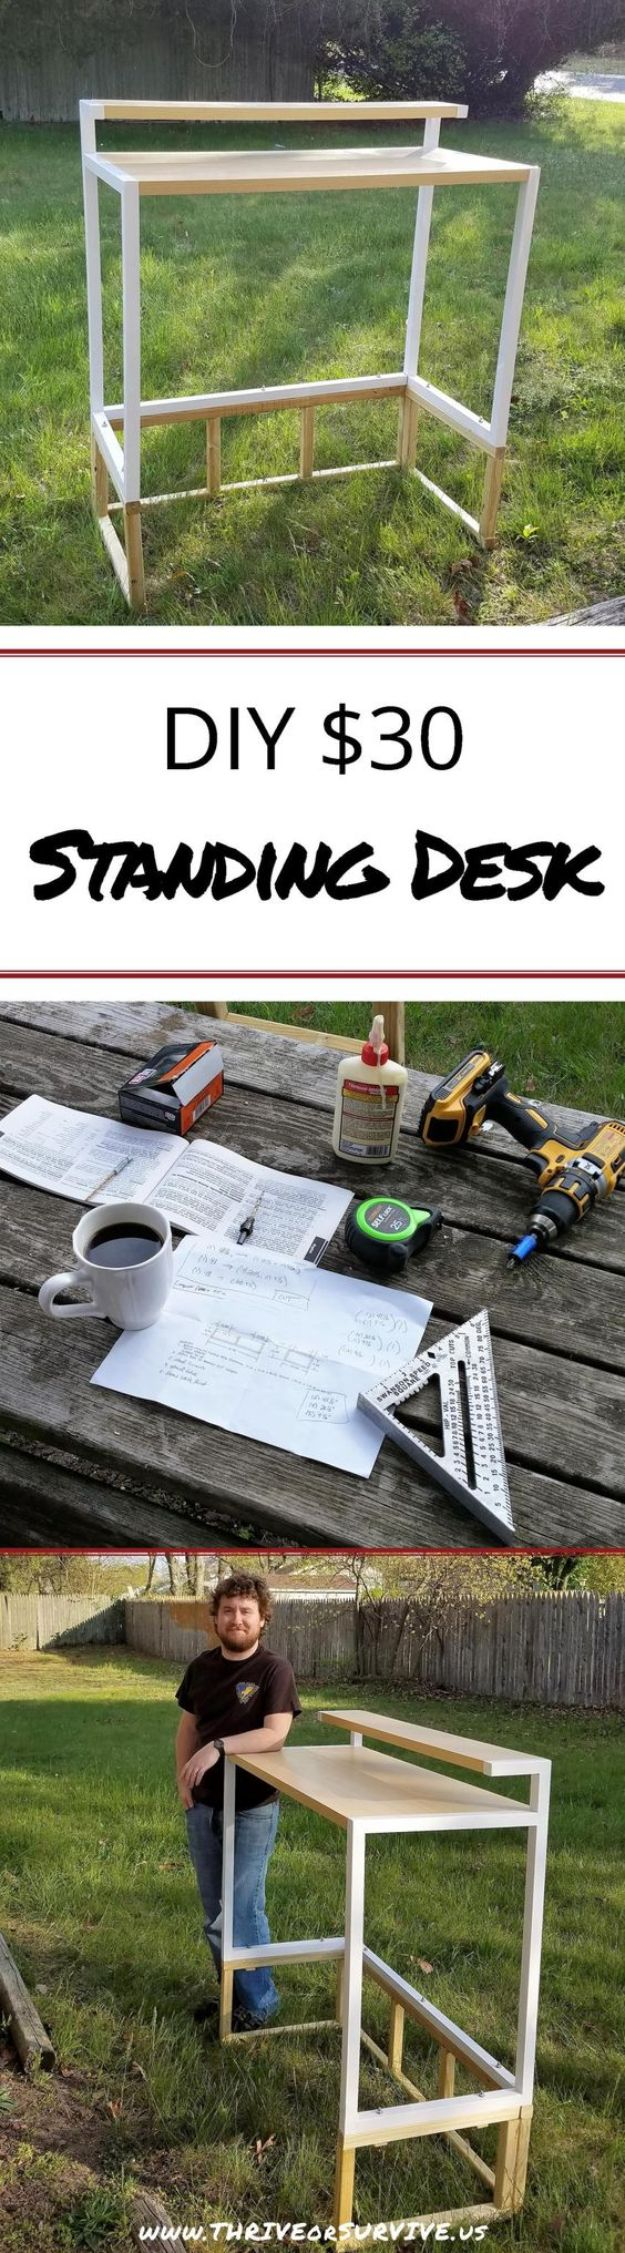 DIY Desks - DIY Standing Desk Transformation - Easy To Make Do It Yourself Desk Projects With Step by Step tutorials - Rustic Wood Pallet, Farmhouse Style Furniture, Modern Design and Upcycling Makeover Project Plans - Standing Computer Desks, Ideas for Small Spaces and Home Office - Cheap Desks With Built In Organization, With Storage, With Hutch and Filing Cabinets http://diyjoy.com/diy-desks